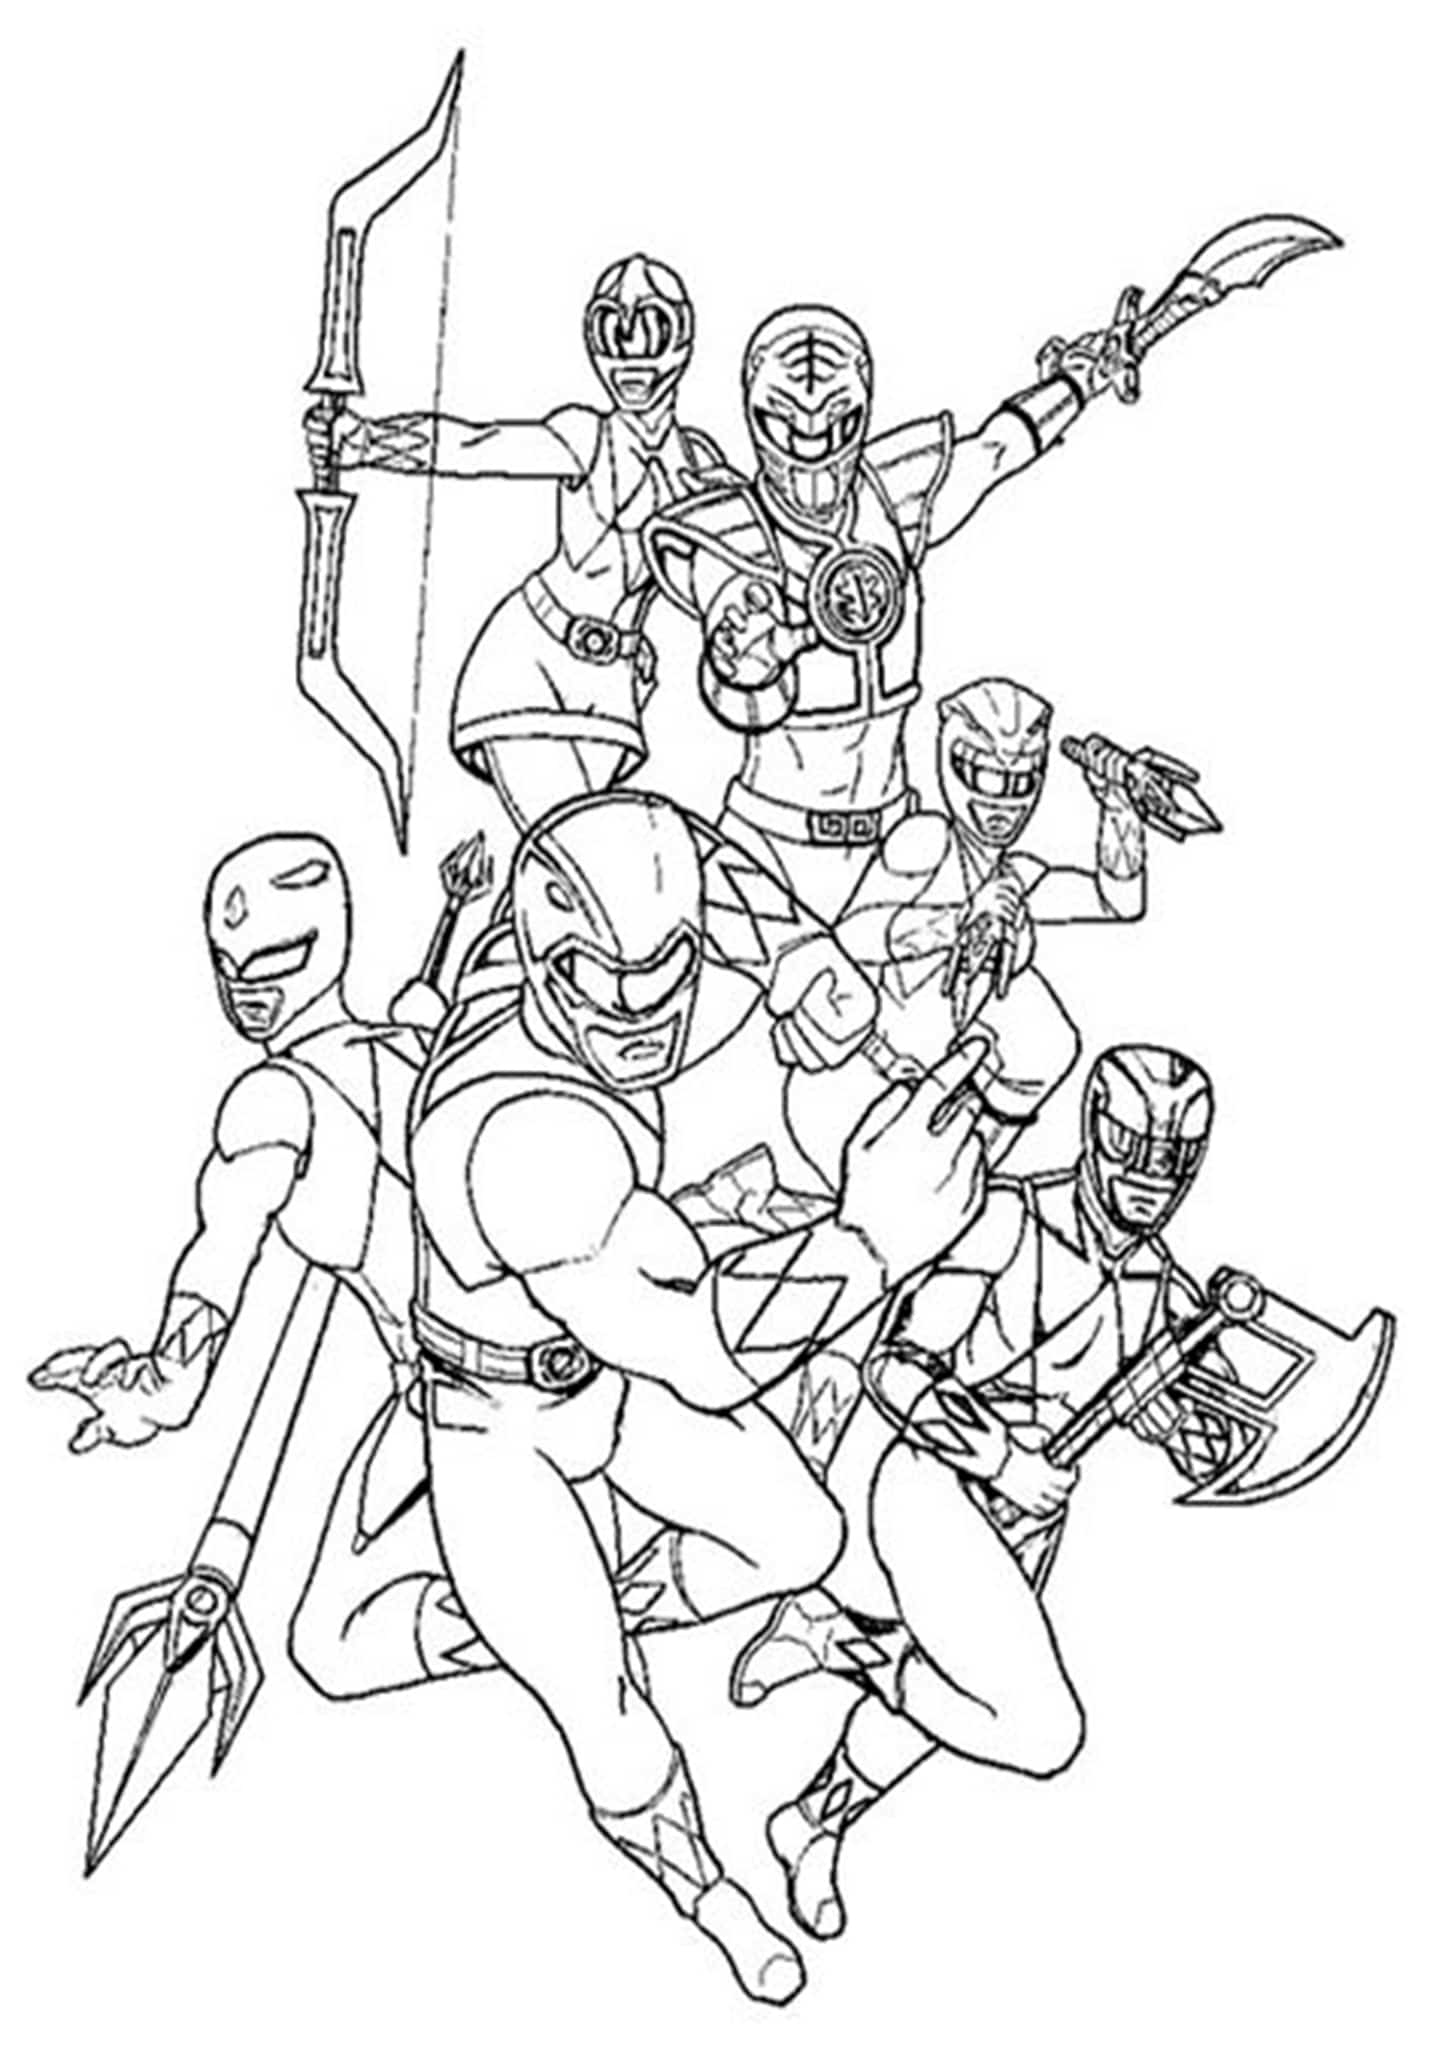 coloring power rangers free easy to print power rangers coloring pages tulamama rangers coloring power